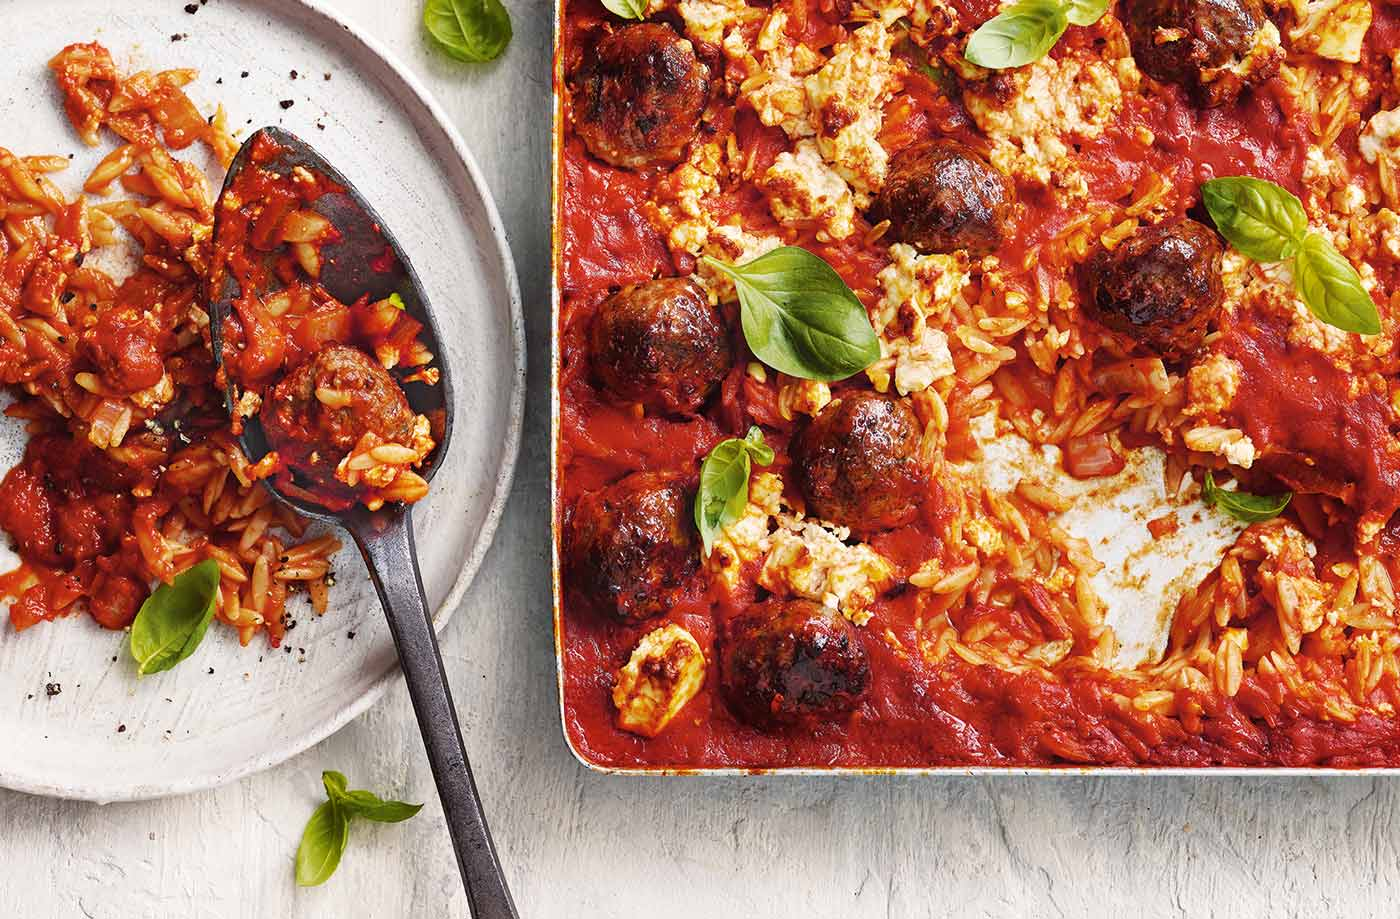 Cheesy meatball traybake recipe